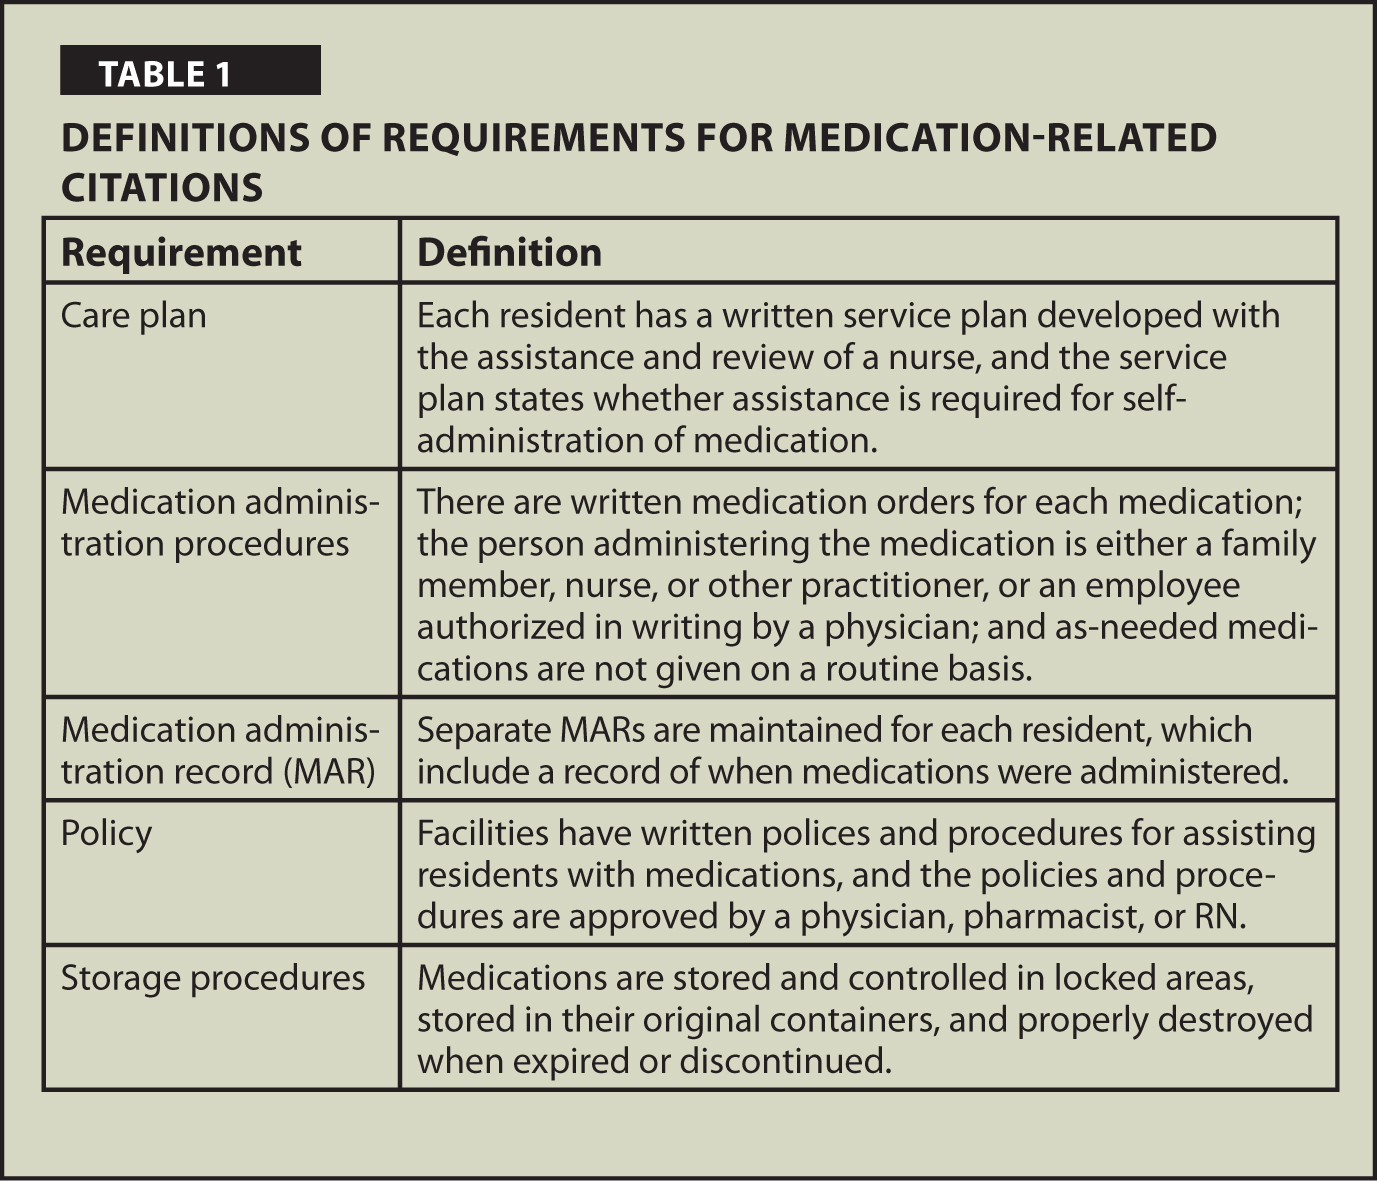 Definitions of Requirements for Medication-Related Citations